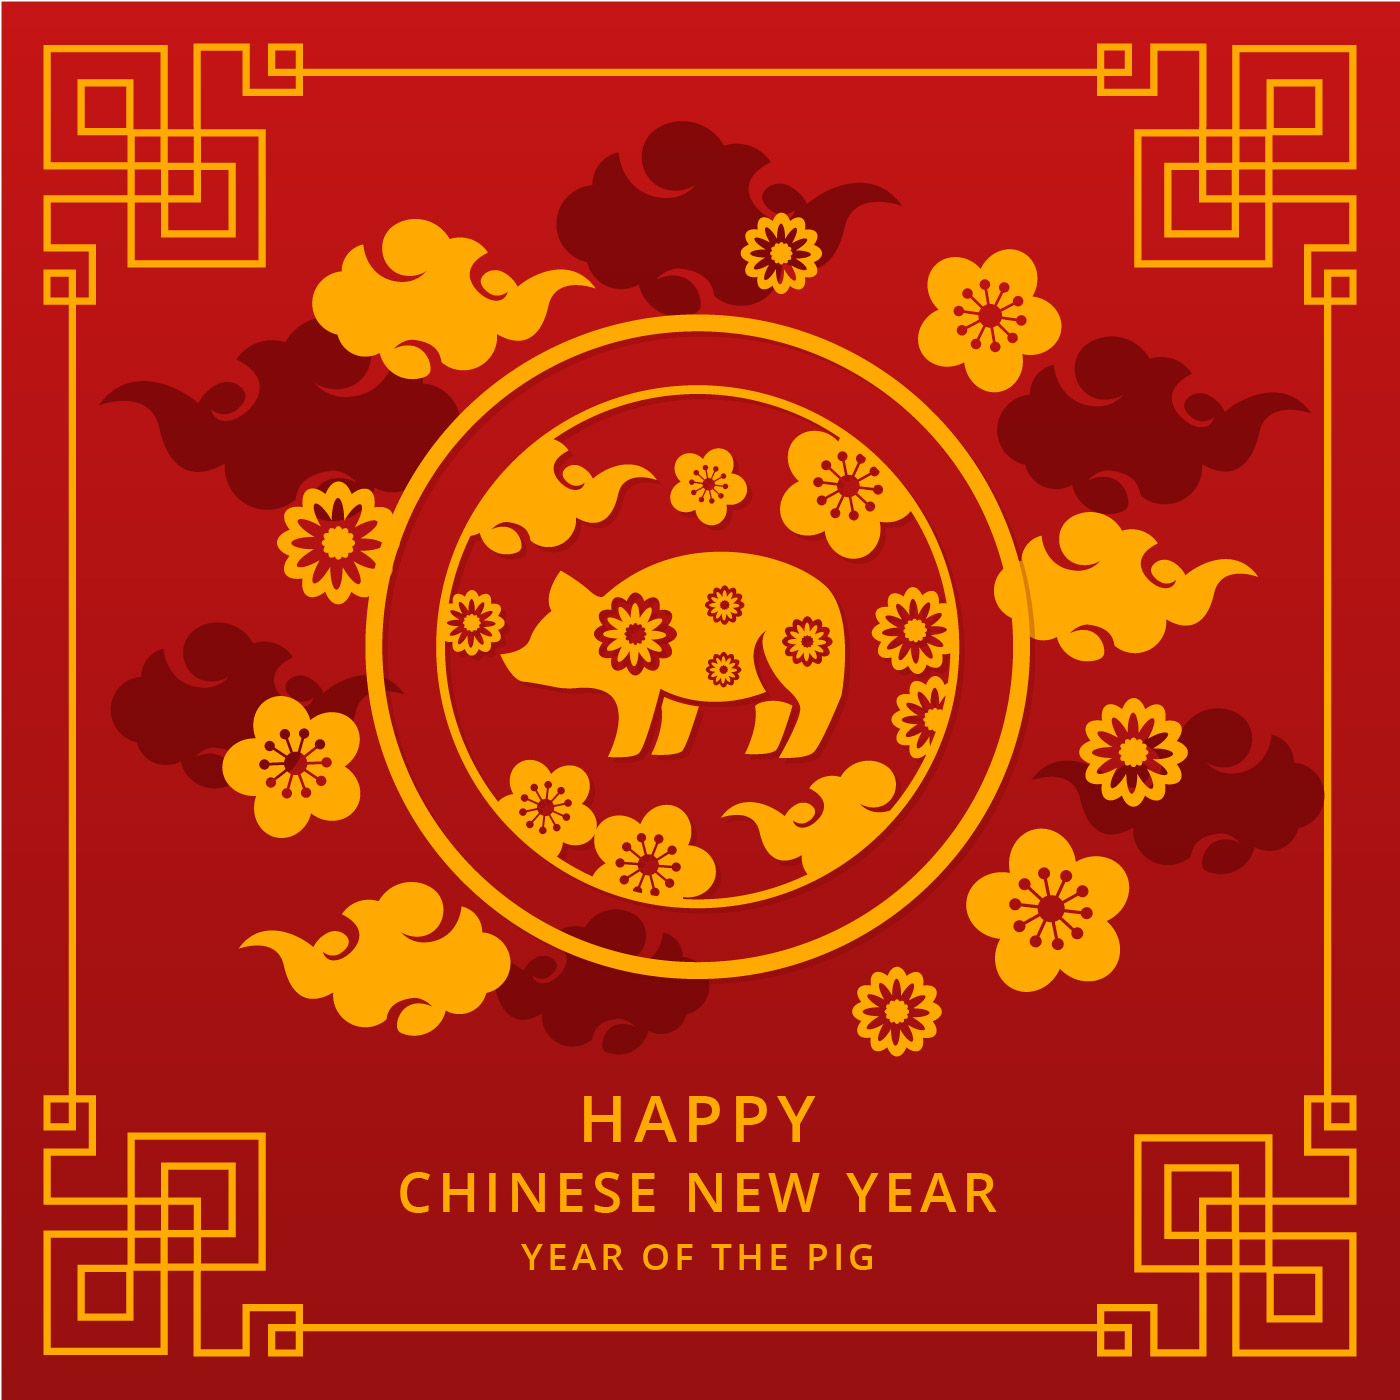 Chinese happy new year 2019 vector download free vectors - What is the lucky color of the year 2019 ...